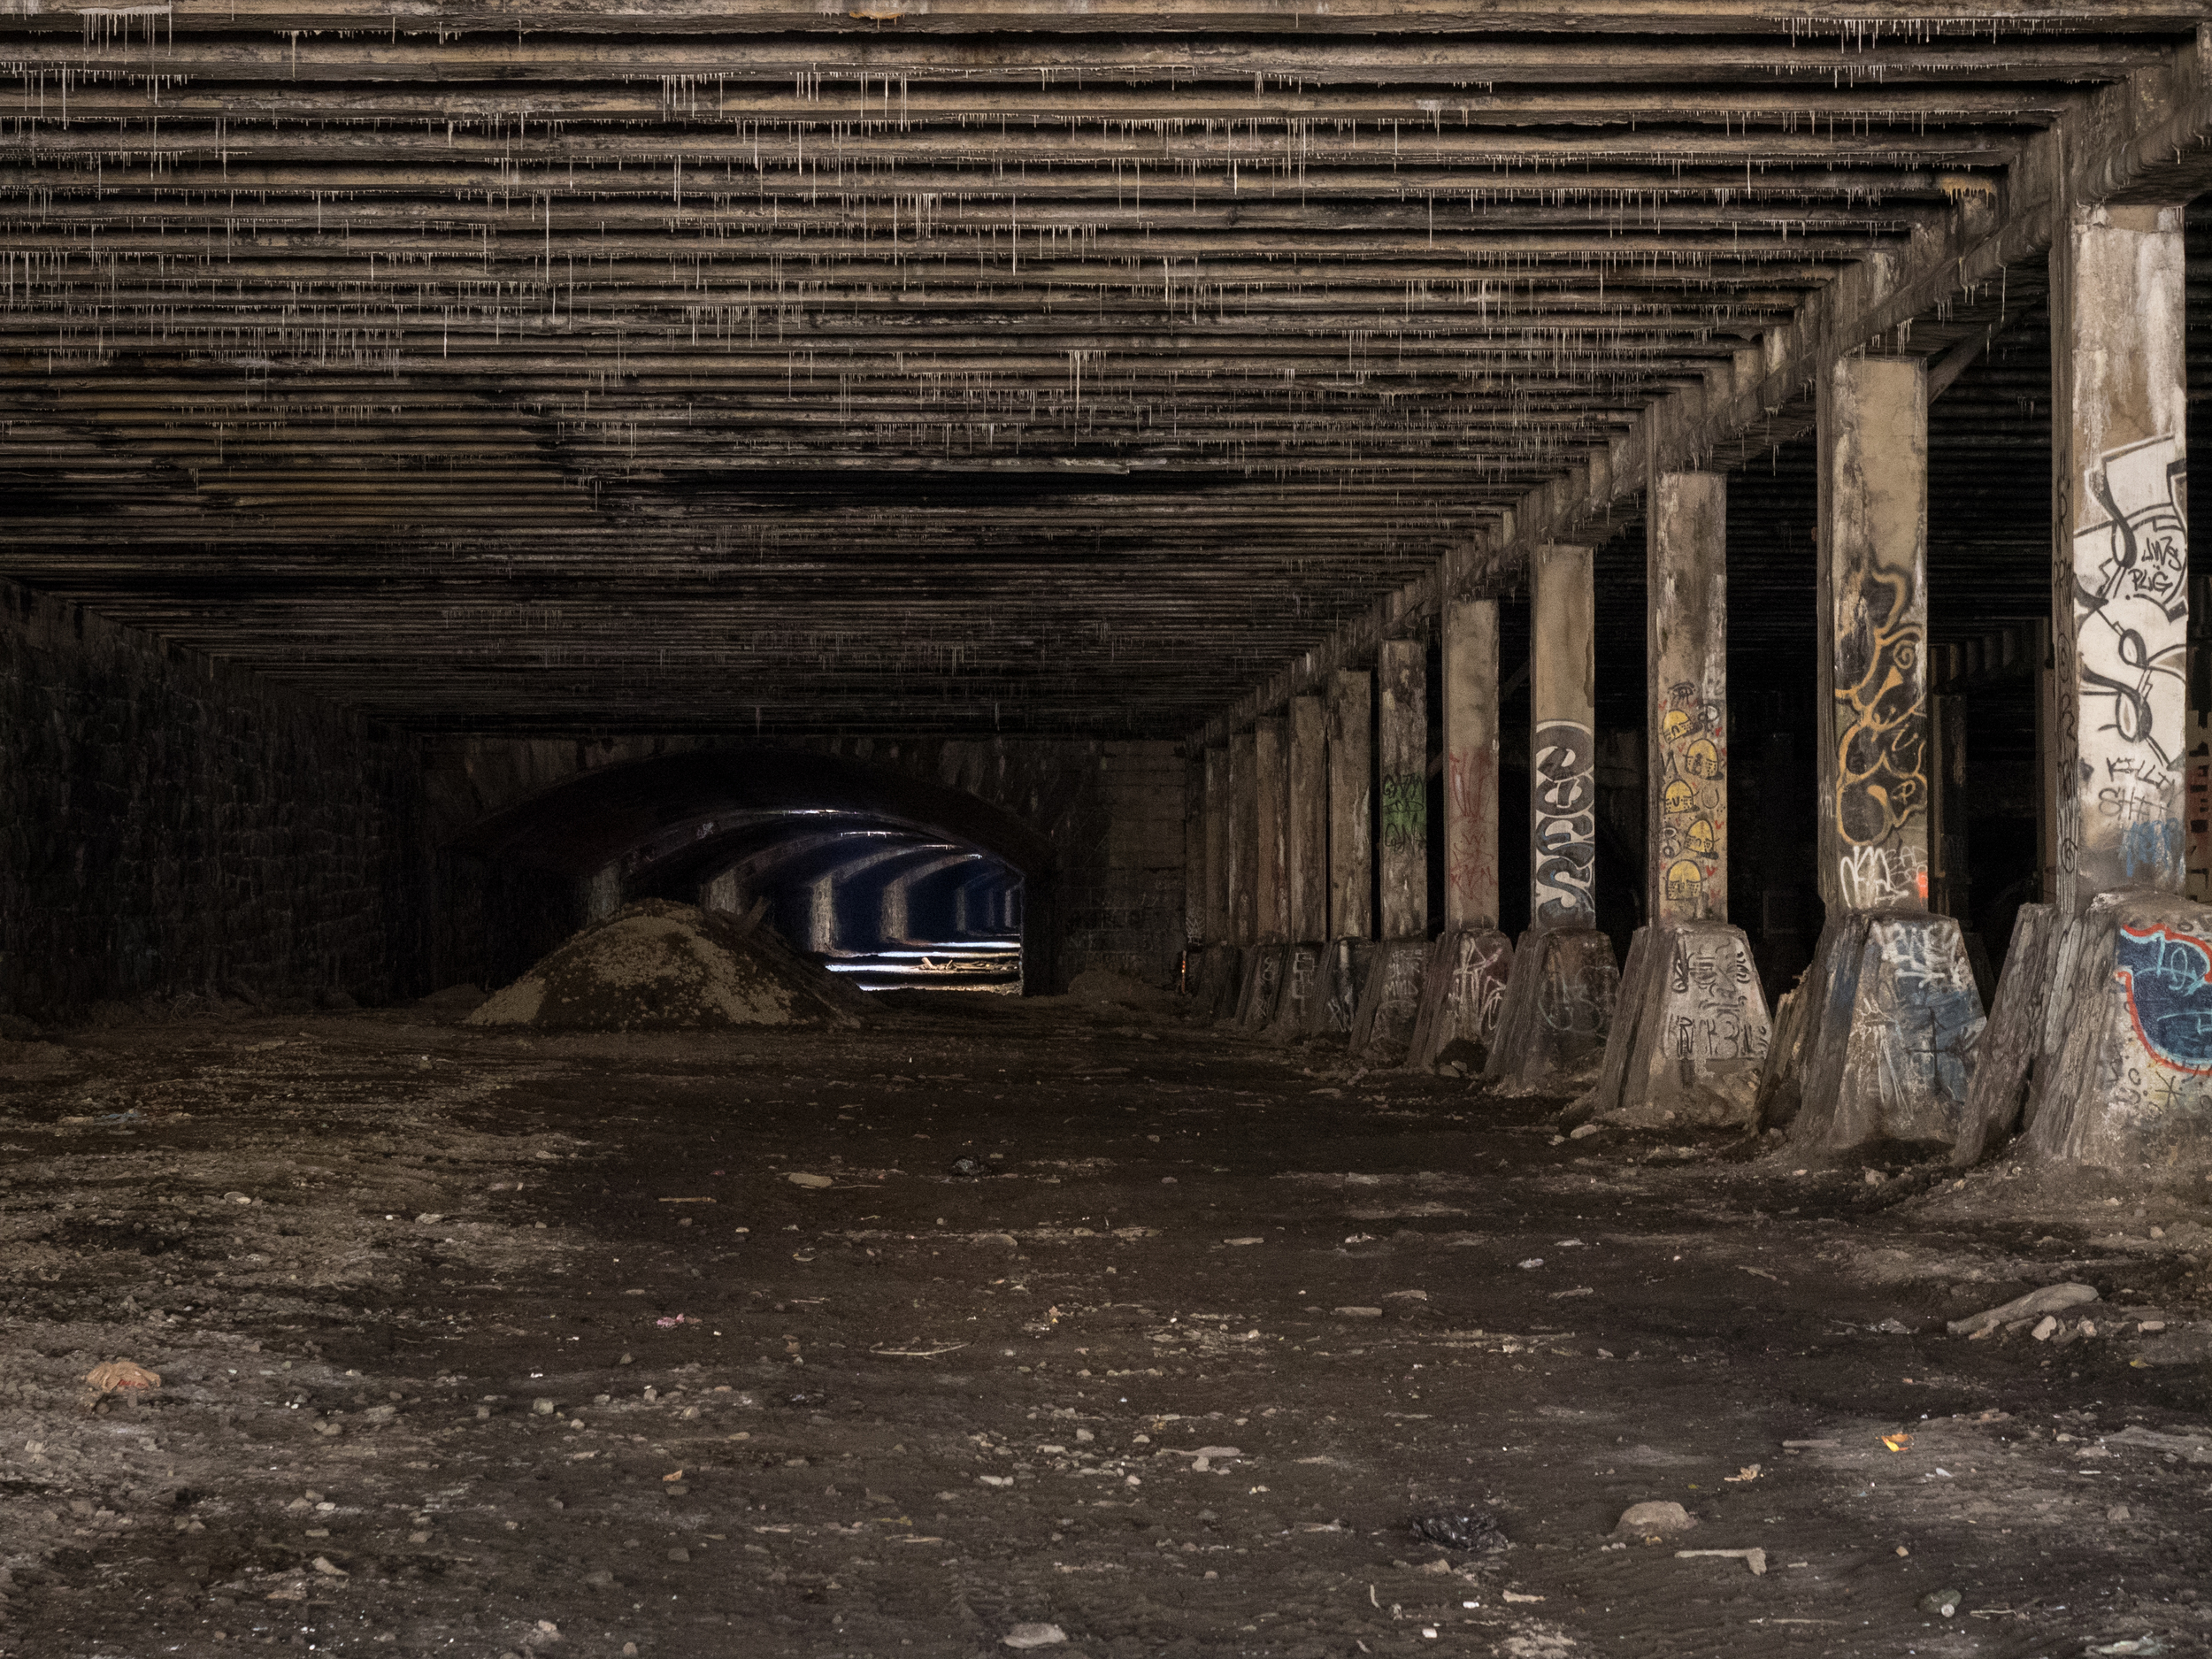 The starting point of the underground viaduct